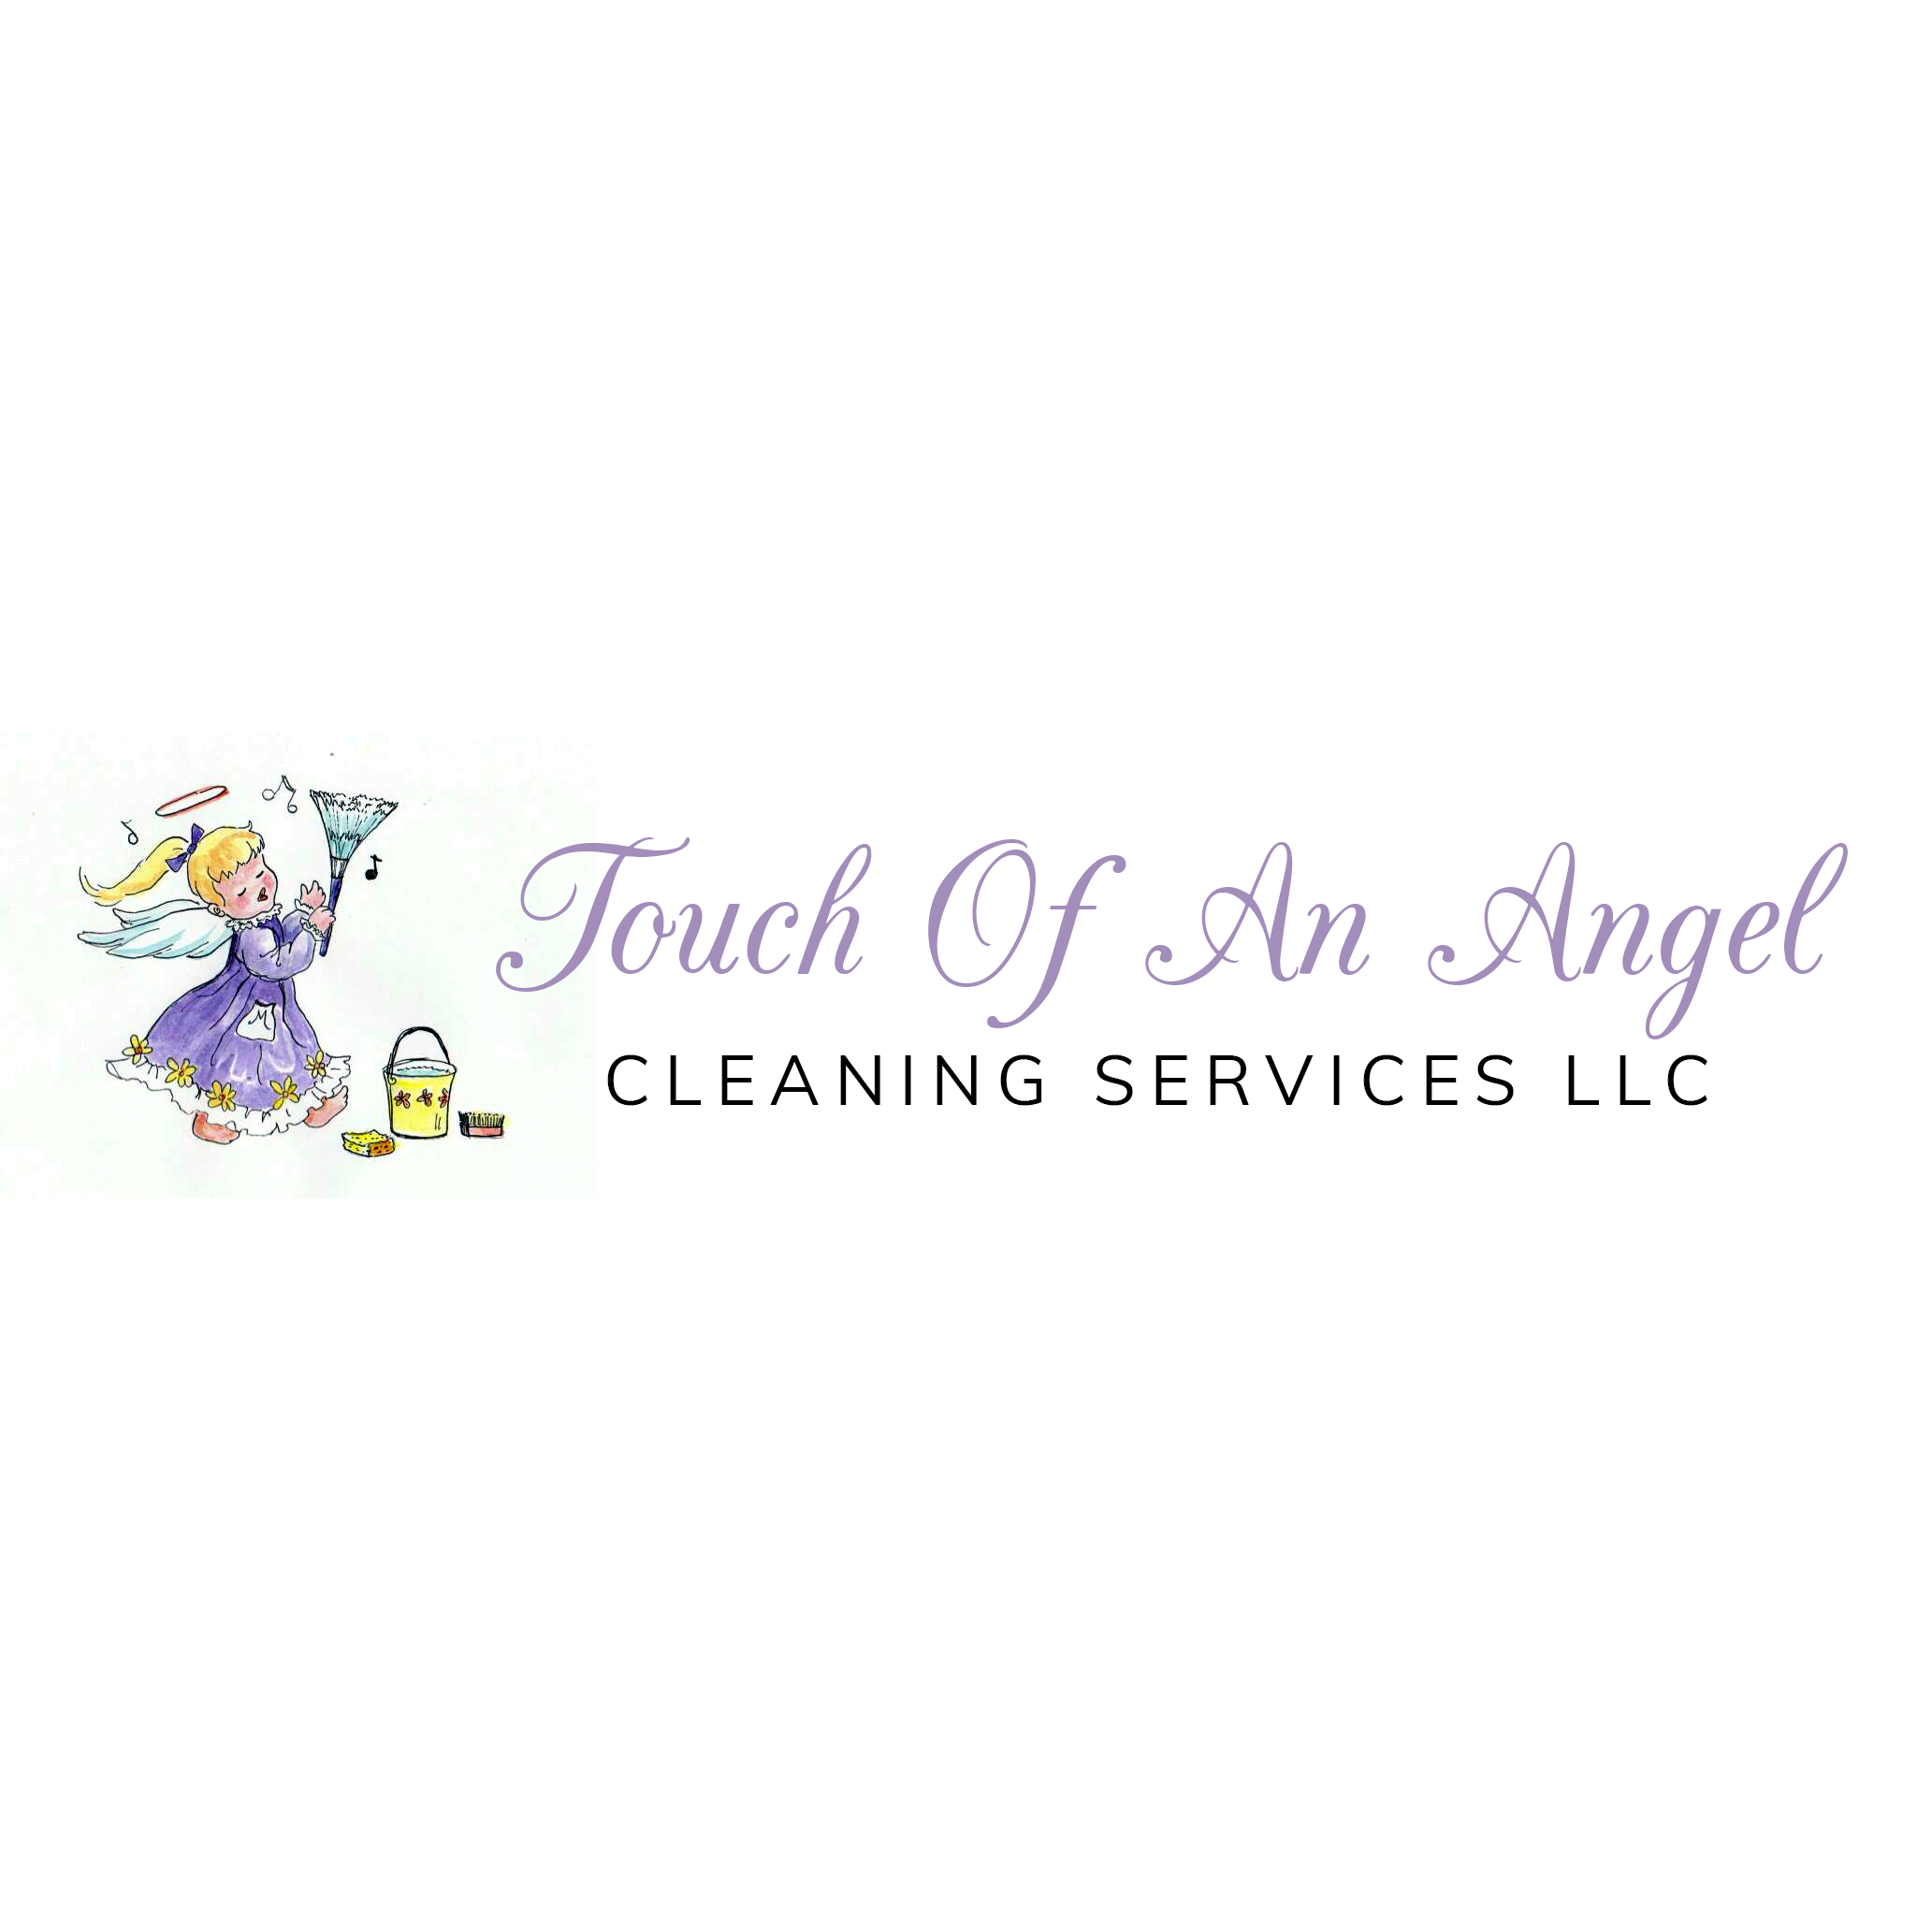 Touch Of An Angel Cleaning Services LLC Logo